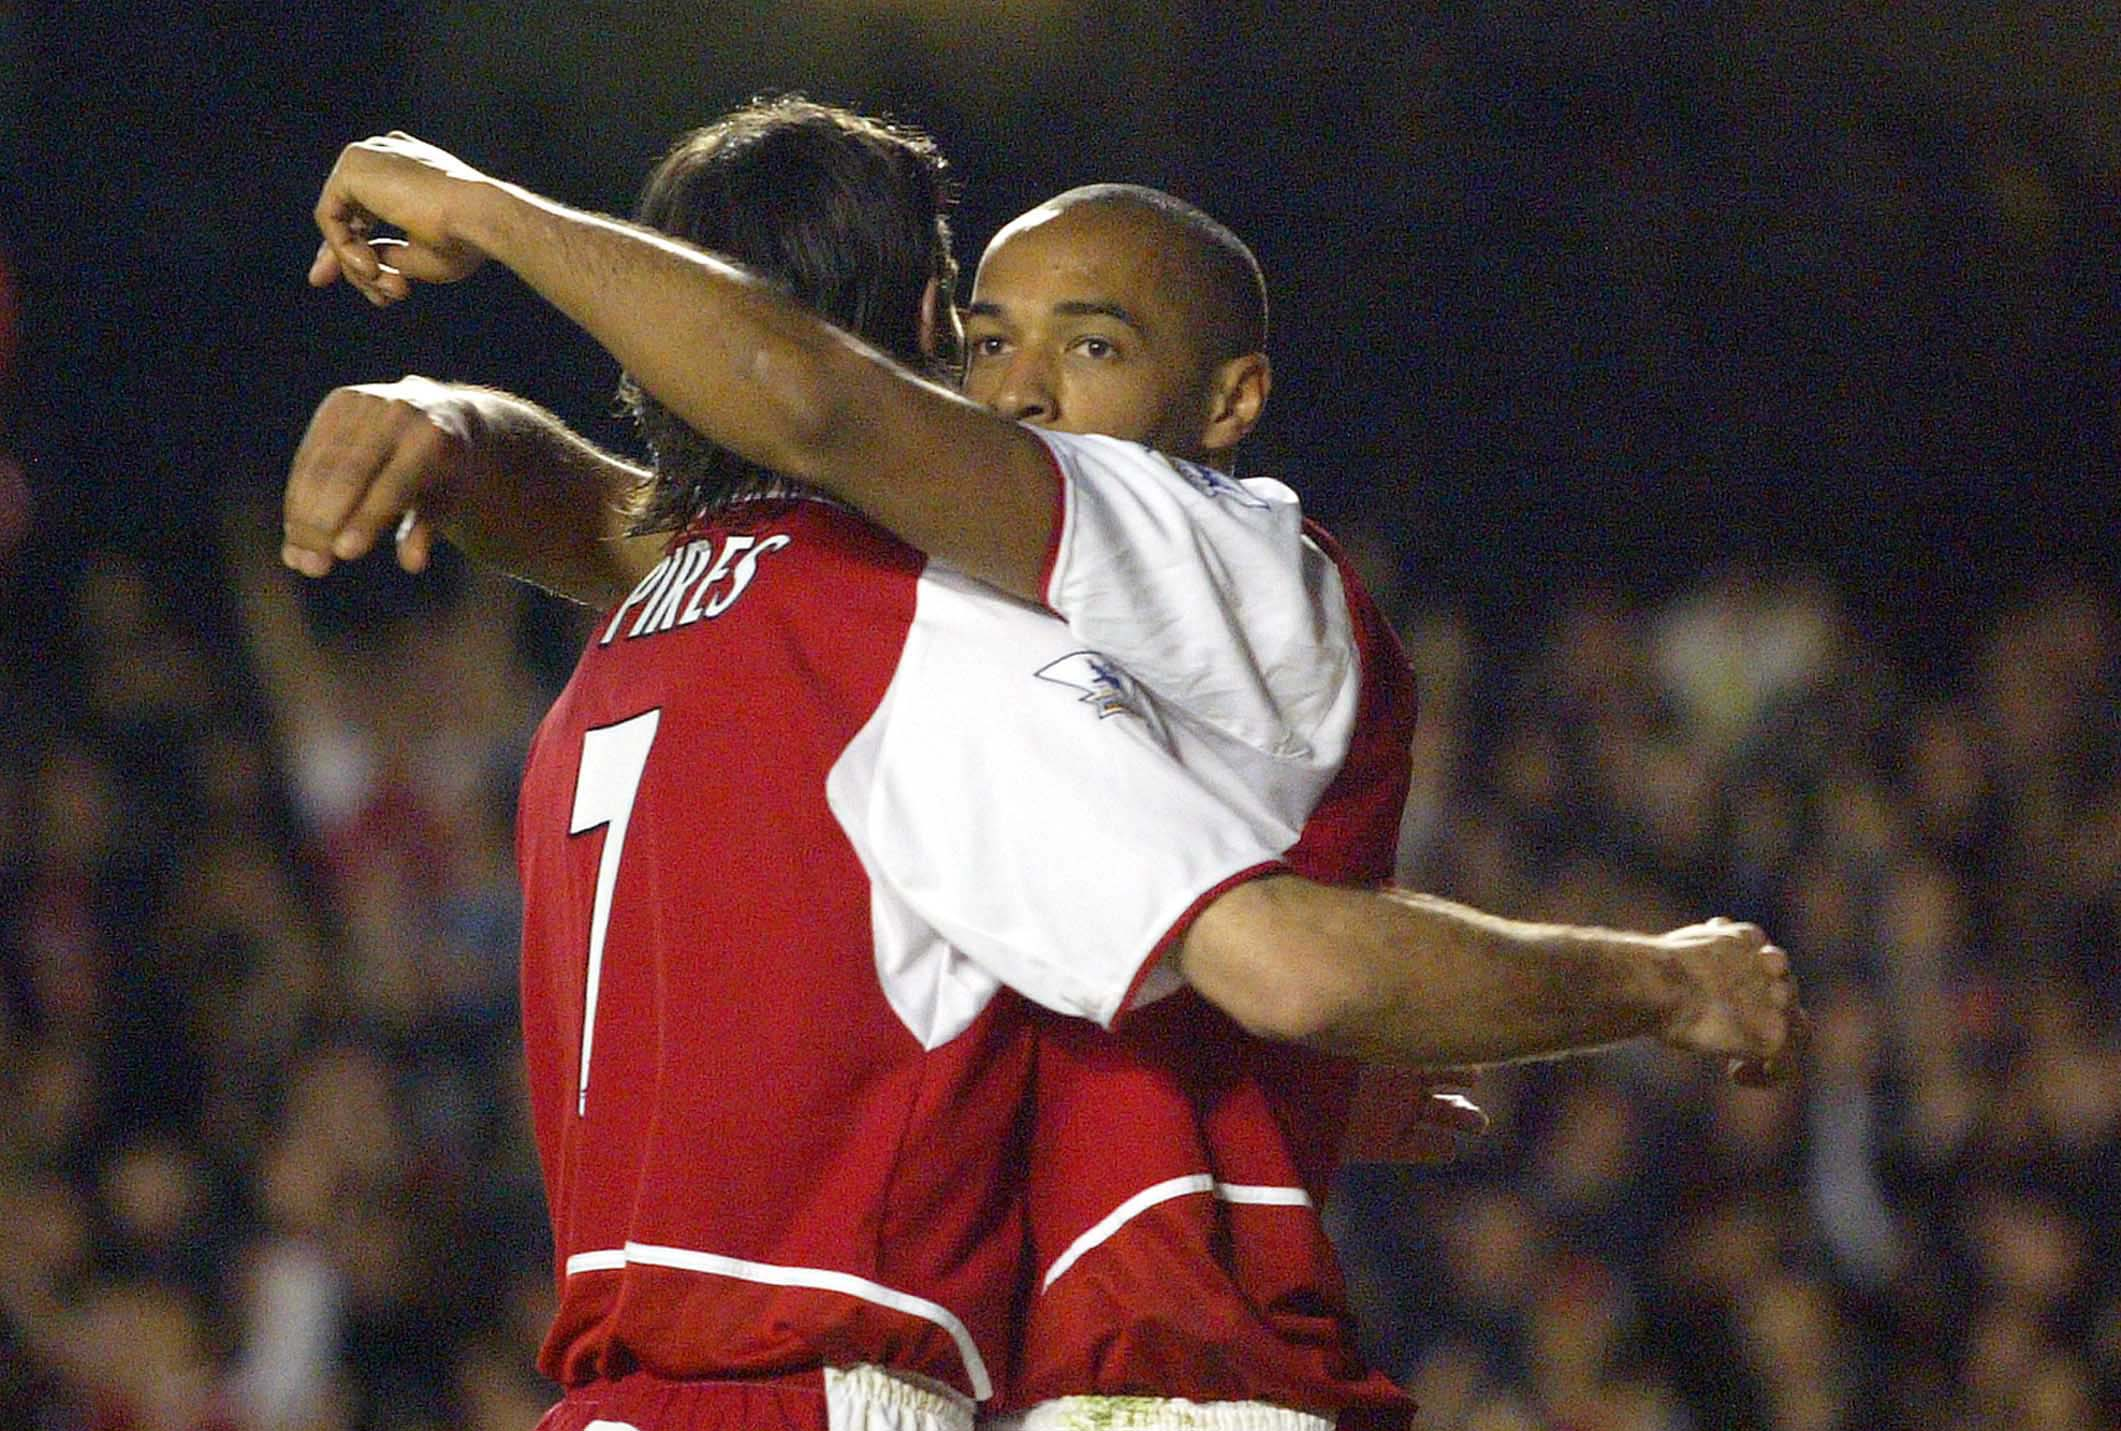 REWIND: The night Arsenal legend Thierry Henry destroyed Leeds United at Highbury